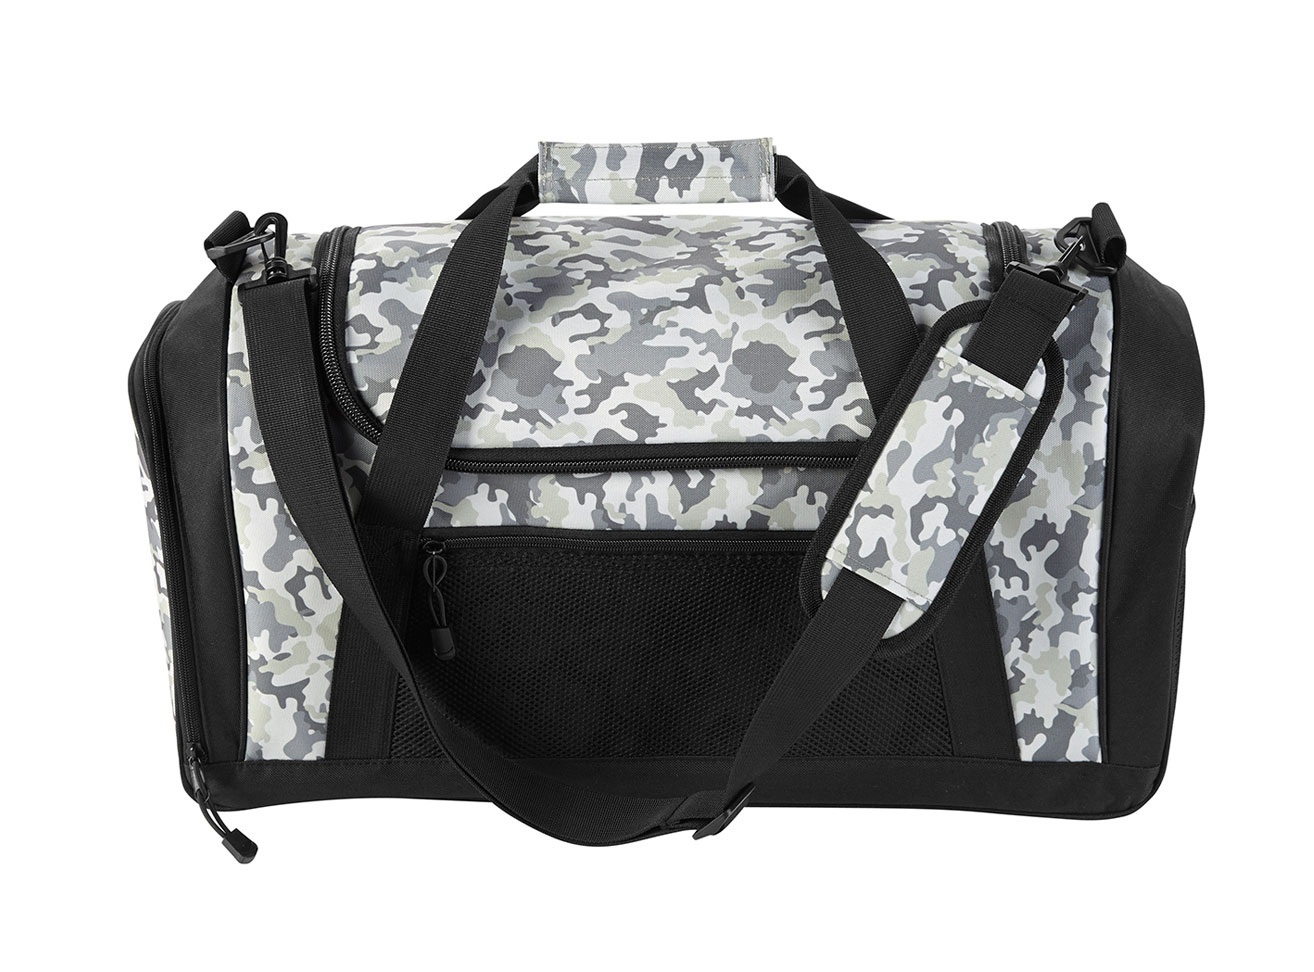 Team 365 Sport Duffel